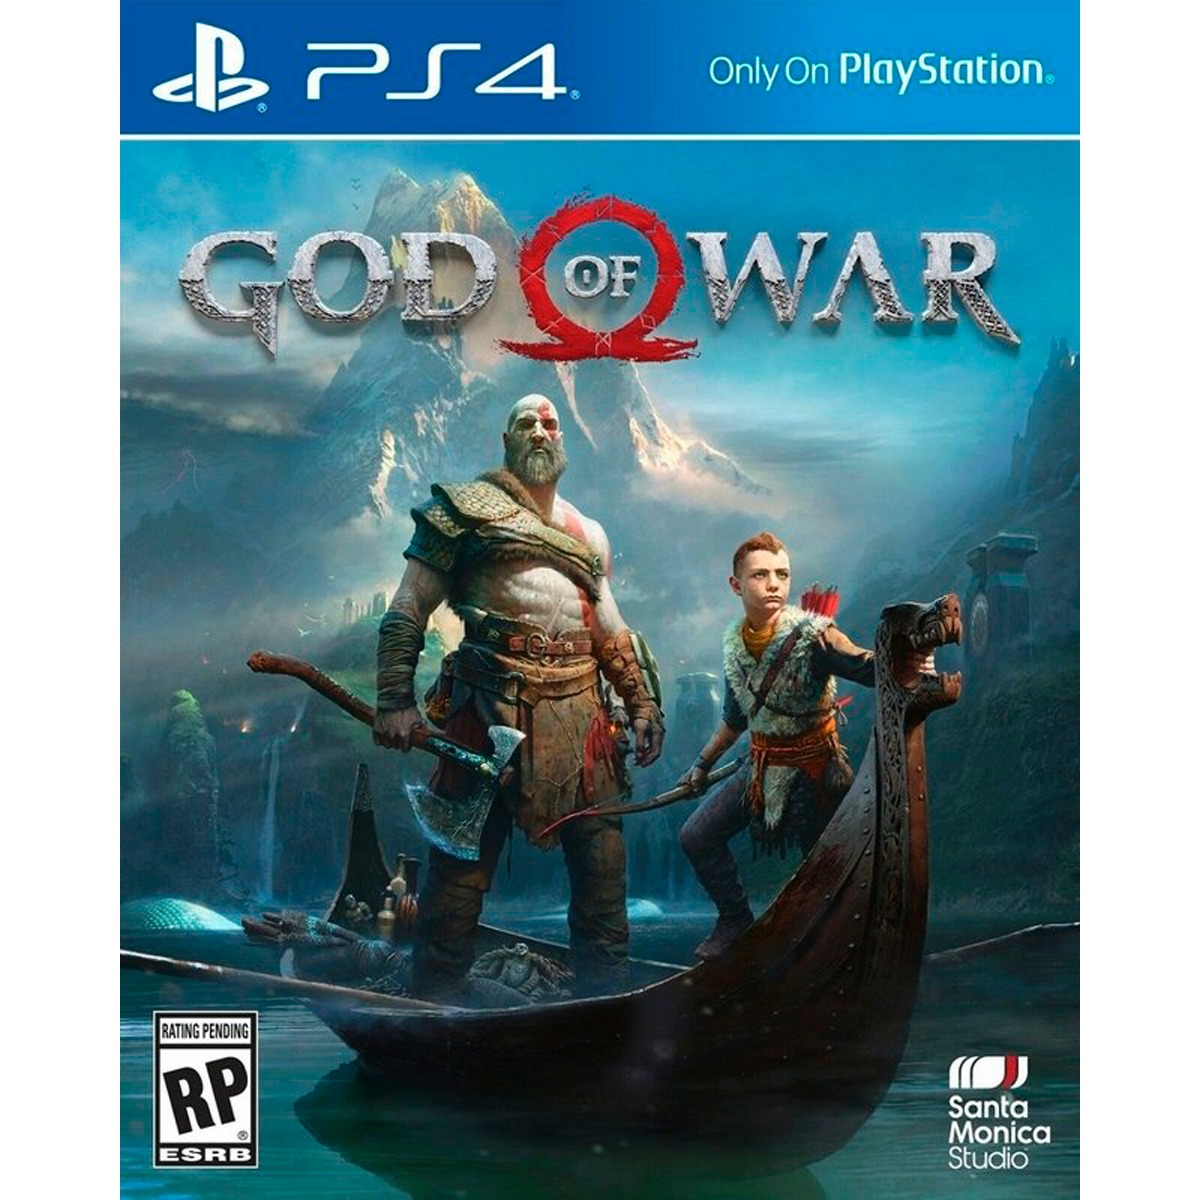 Ps4 Juego Para Ps4 God Of War 2018 1 988 64 En Mercado Libre